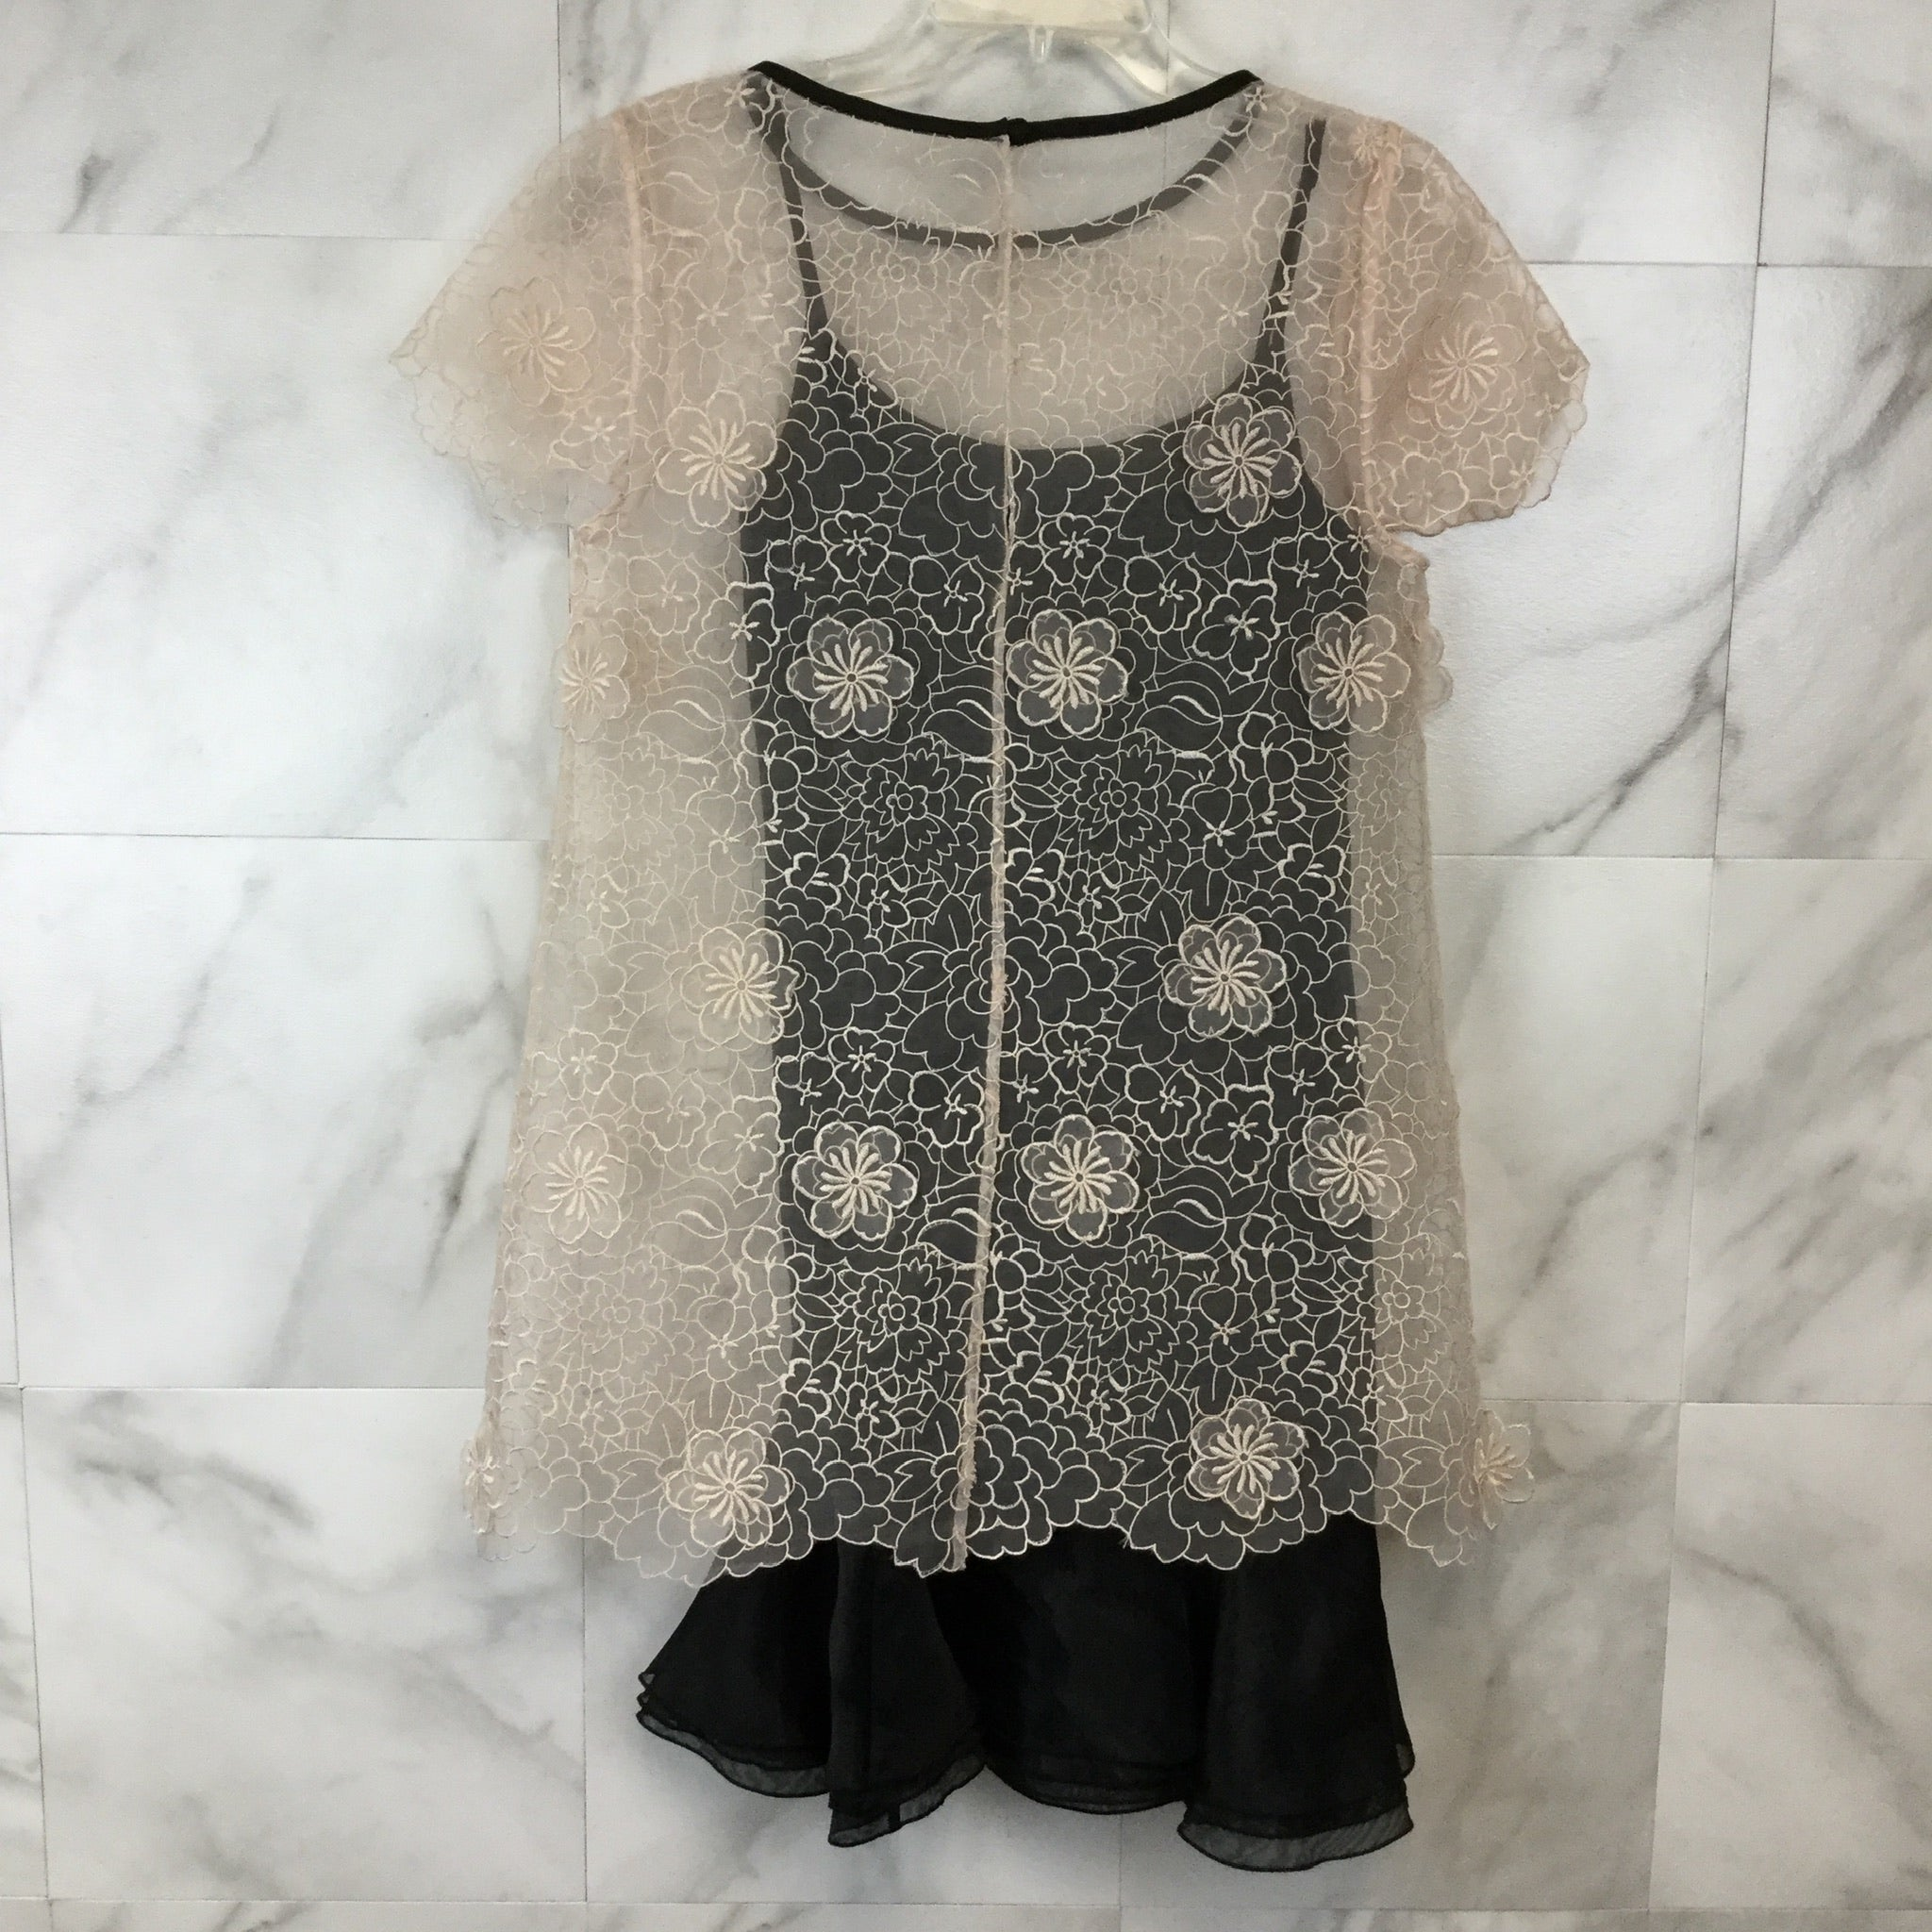 Erin Fetherston 3D Blossom Lace Popover Dress - size 6